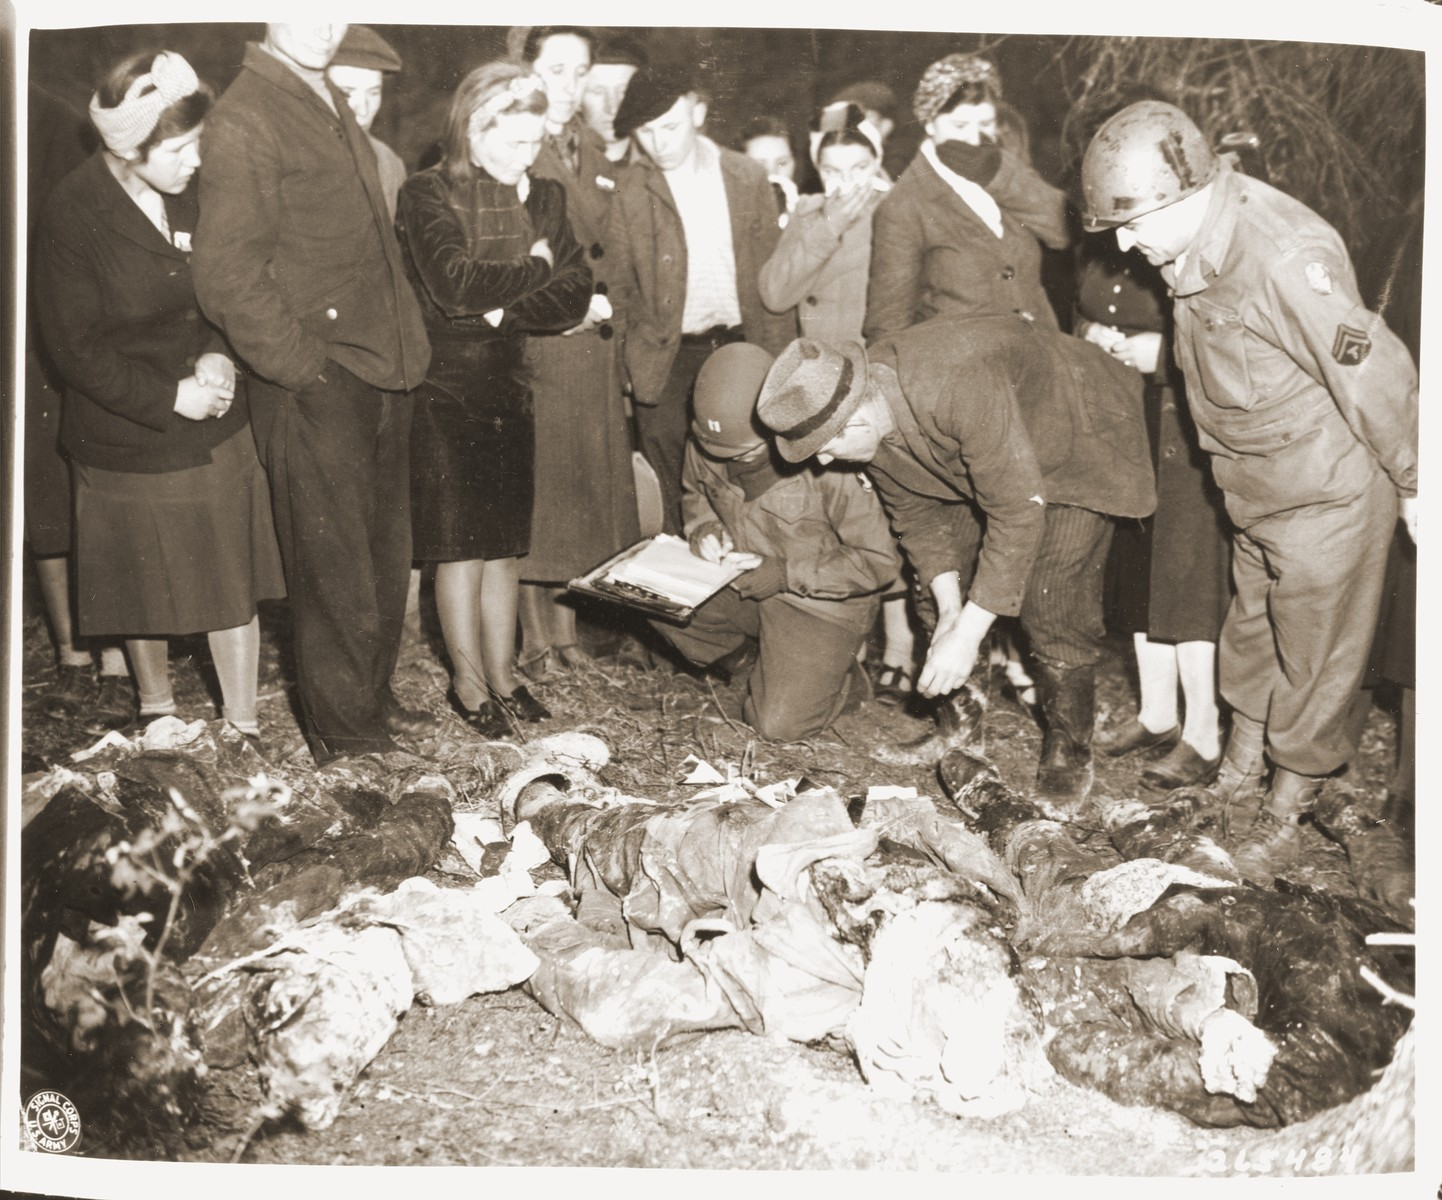 "A German civilian relays information found on the body of one of 57 Russians, exhumed from a mass grave outside the town of Suttrop, to a captain of the 95th Infantry division, U.S. Ninth Army.      The victims, including women and one baby, were forced to dig their own grave and then were shot by SS troops six weeks before the arrival of American troops.  On May 3, 1945, the 95th Infantry Division of the U.S. Ninth Army arrived in Suttrop and were informed by locals of the mass grave.  American troops forced the townspeople to exhume the grave after which Russian displaced persons in the area identified the bodies.  The victims were reburied in individual graves, and a U.S. Army chaplain conducted burial services.  Russians remaining in the area placed wreaths on the graves.  The original Signal Corps caption reads, ""GERMAN CIVILIANS FORCED TO EXHUME ATROCITY VICTIMS.  Amerian officers ordered German civilians of Suttrop, Germany, to exhume the bodies of 57 Russians killed by German SS troops and dumped into a mass grave before the arrival of troops of the Ninth U.S. Army.  Soldiers of the 95th Infantry Division were led by informers to the huge common grave of the victims, including women and one baby, May 3, 1945.  The Russians are said to have been forced to dig their own burial pit and then were shot so that their bodies would roll into it.  The executions are said to have taken place six weeks before U.S. troops entered  Suttrop.  The German civilians who were forced to exhume the bodies also were forced to search them for identification papers and then rebury them in individual graves.  A U.S. Army chaplain performed burial rites and wreaths were placed on the greaves by Russians remaining in the area.  Before burial, all German civilians in the vicinity were ordered to view the atrocity victims.  BIPPA                                                                     EA 65391  THIS PHOTO SHOWS:  A german civilian gives the information he has just obtained from a corpse to a captain of the 95th Infantry Division, Ninth U.S. Army.  U.S. Signal Corps Photo ETO-HQ-45030.  SERVICED BY LONDON OWI TO LIST B CERTIFIED AS PASSED BY SHAEF CENSOR"""